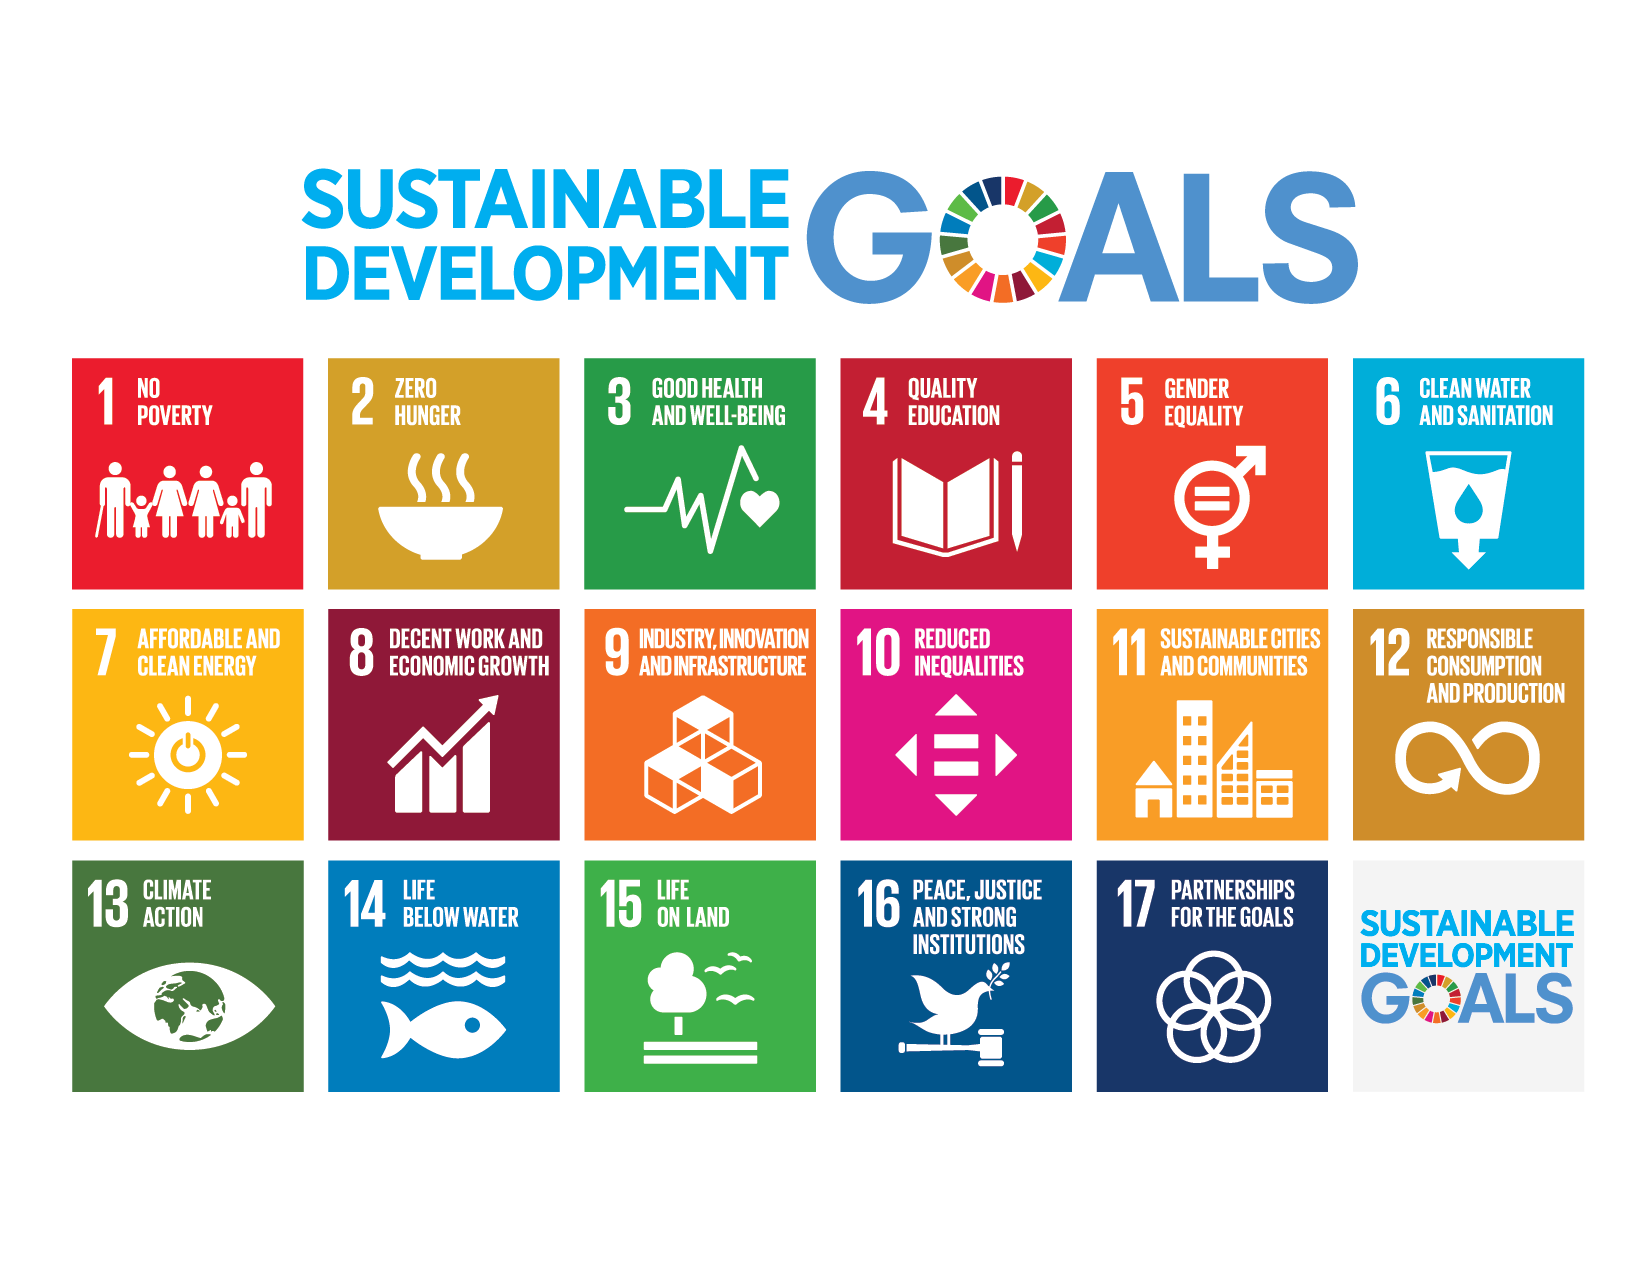 UN Strategic Development Goals